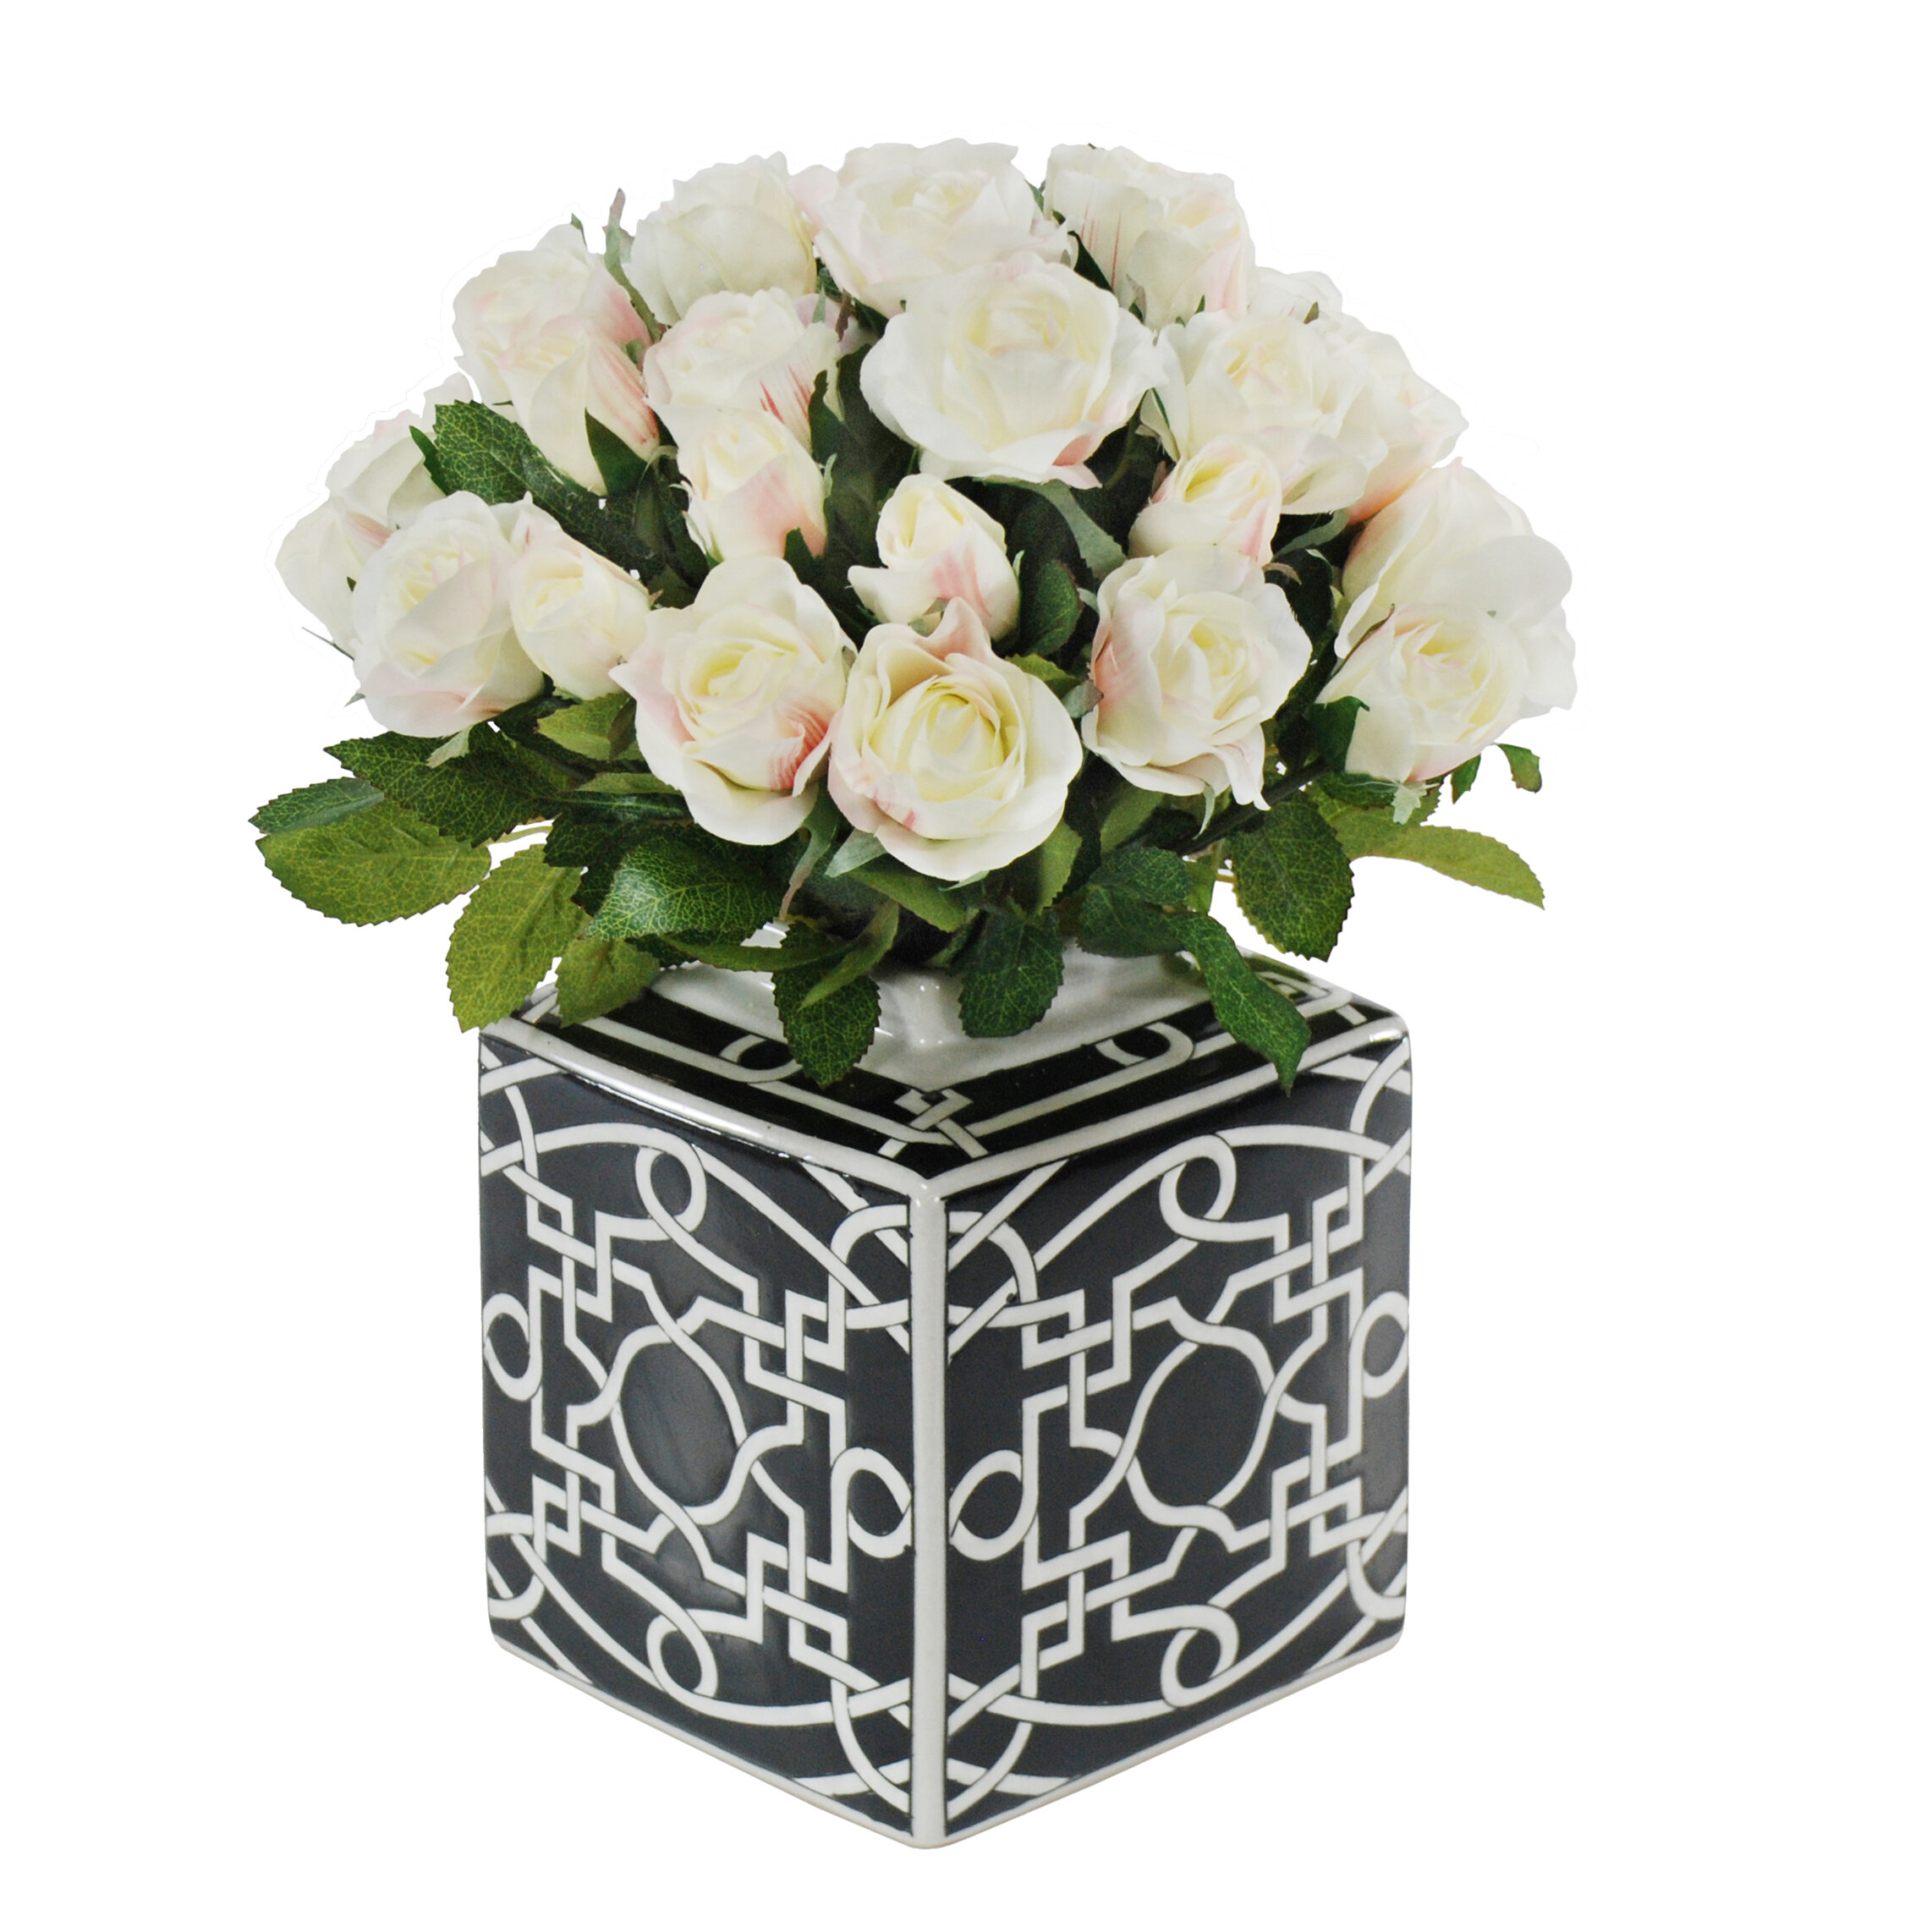 Jane Seymour Botanicals Rose Bouquet In Black White Ceramic Vase